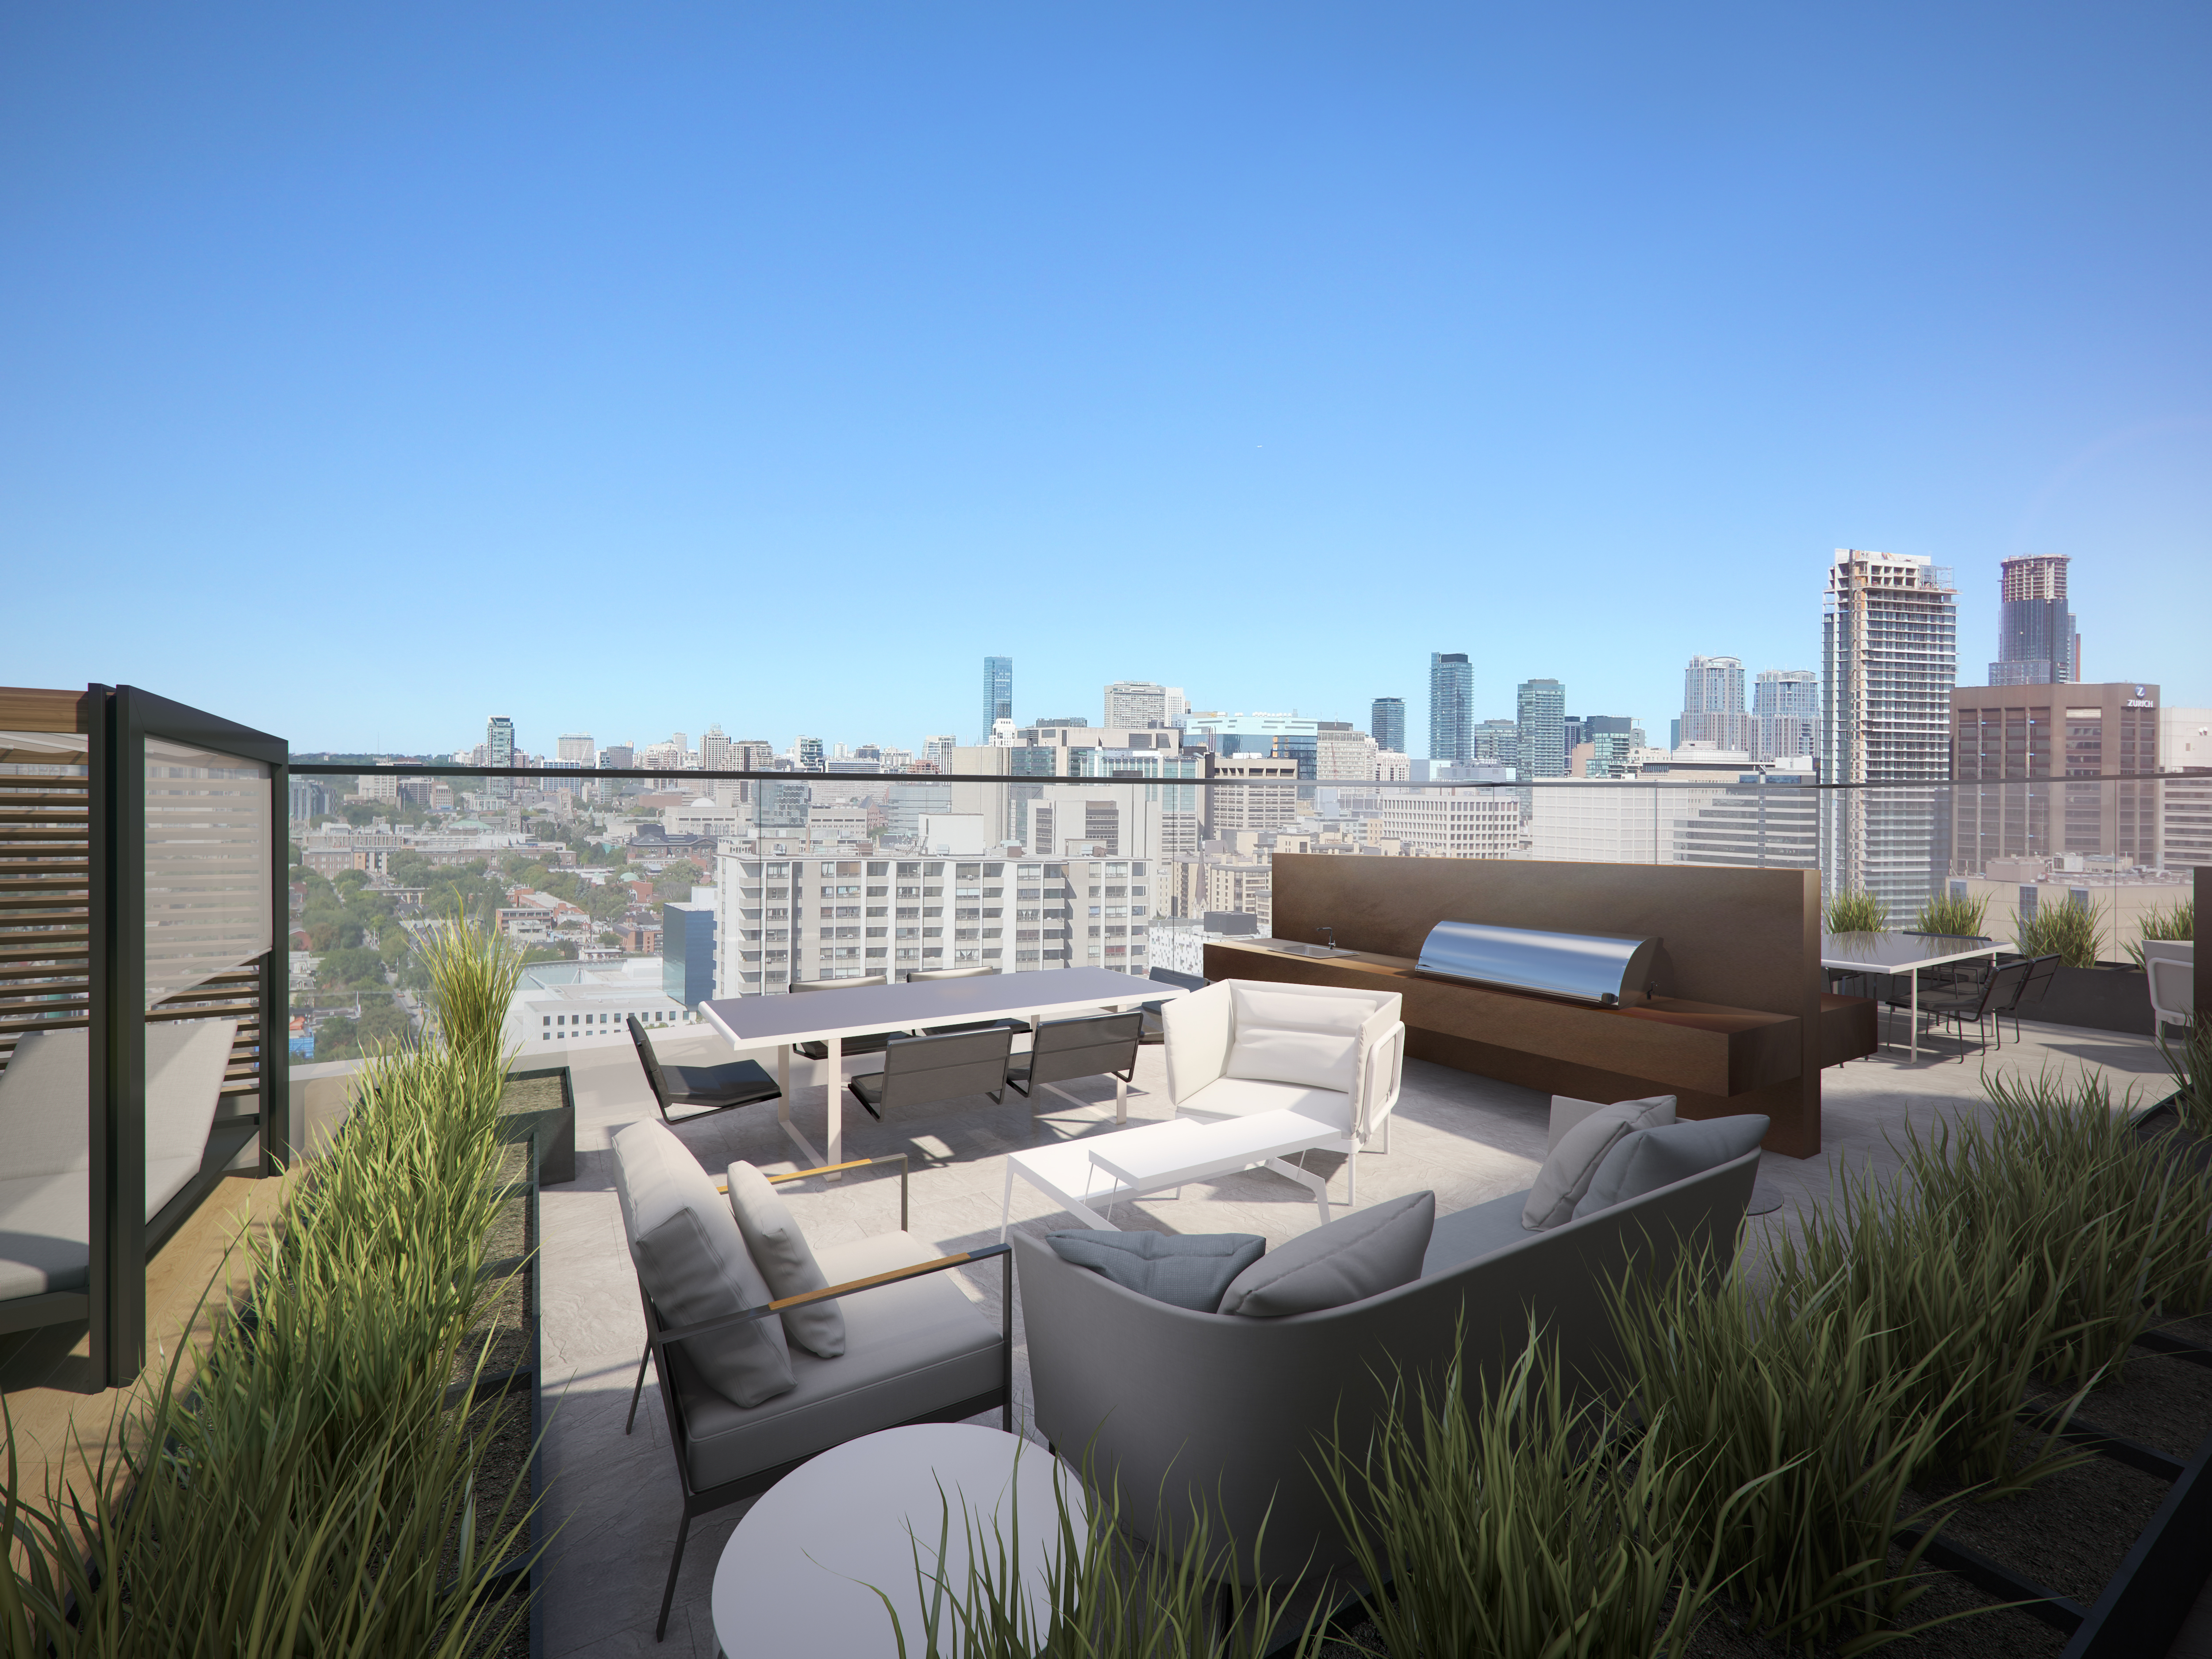 www-330richmond-net-330-richmond-condos-outdoor-lounge-bbq